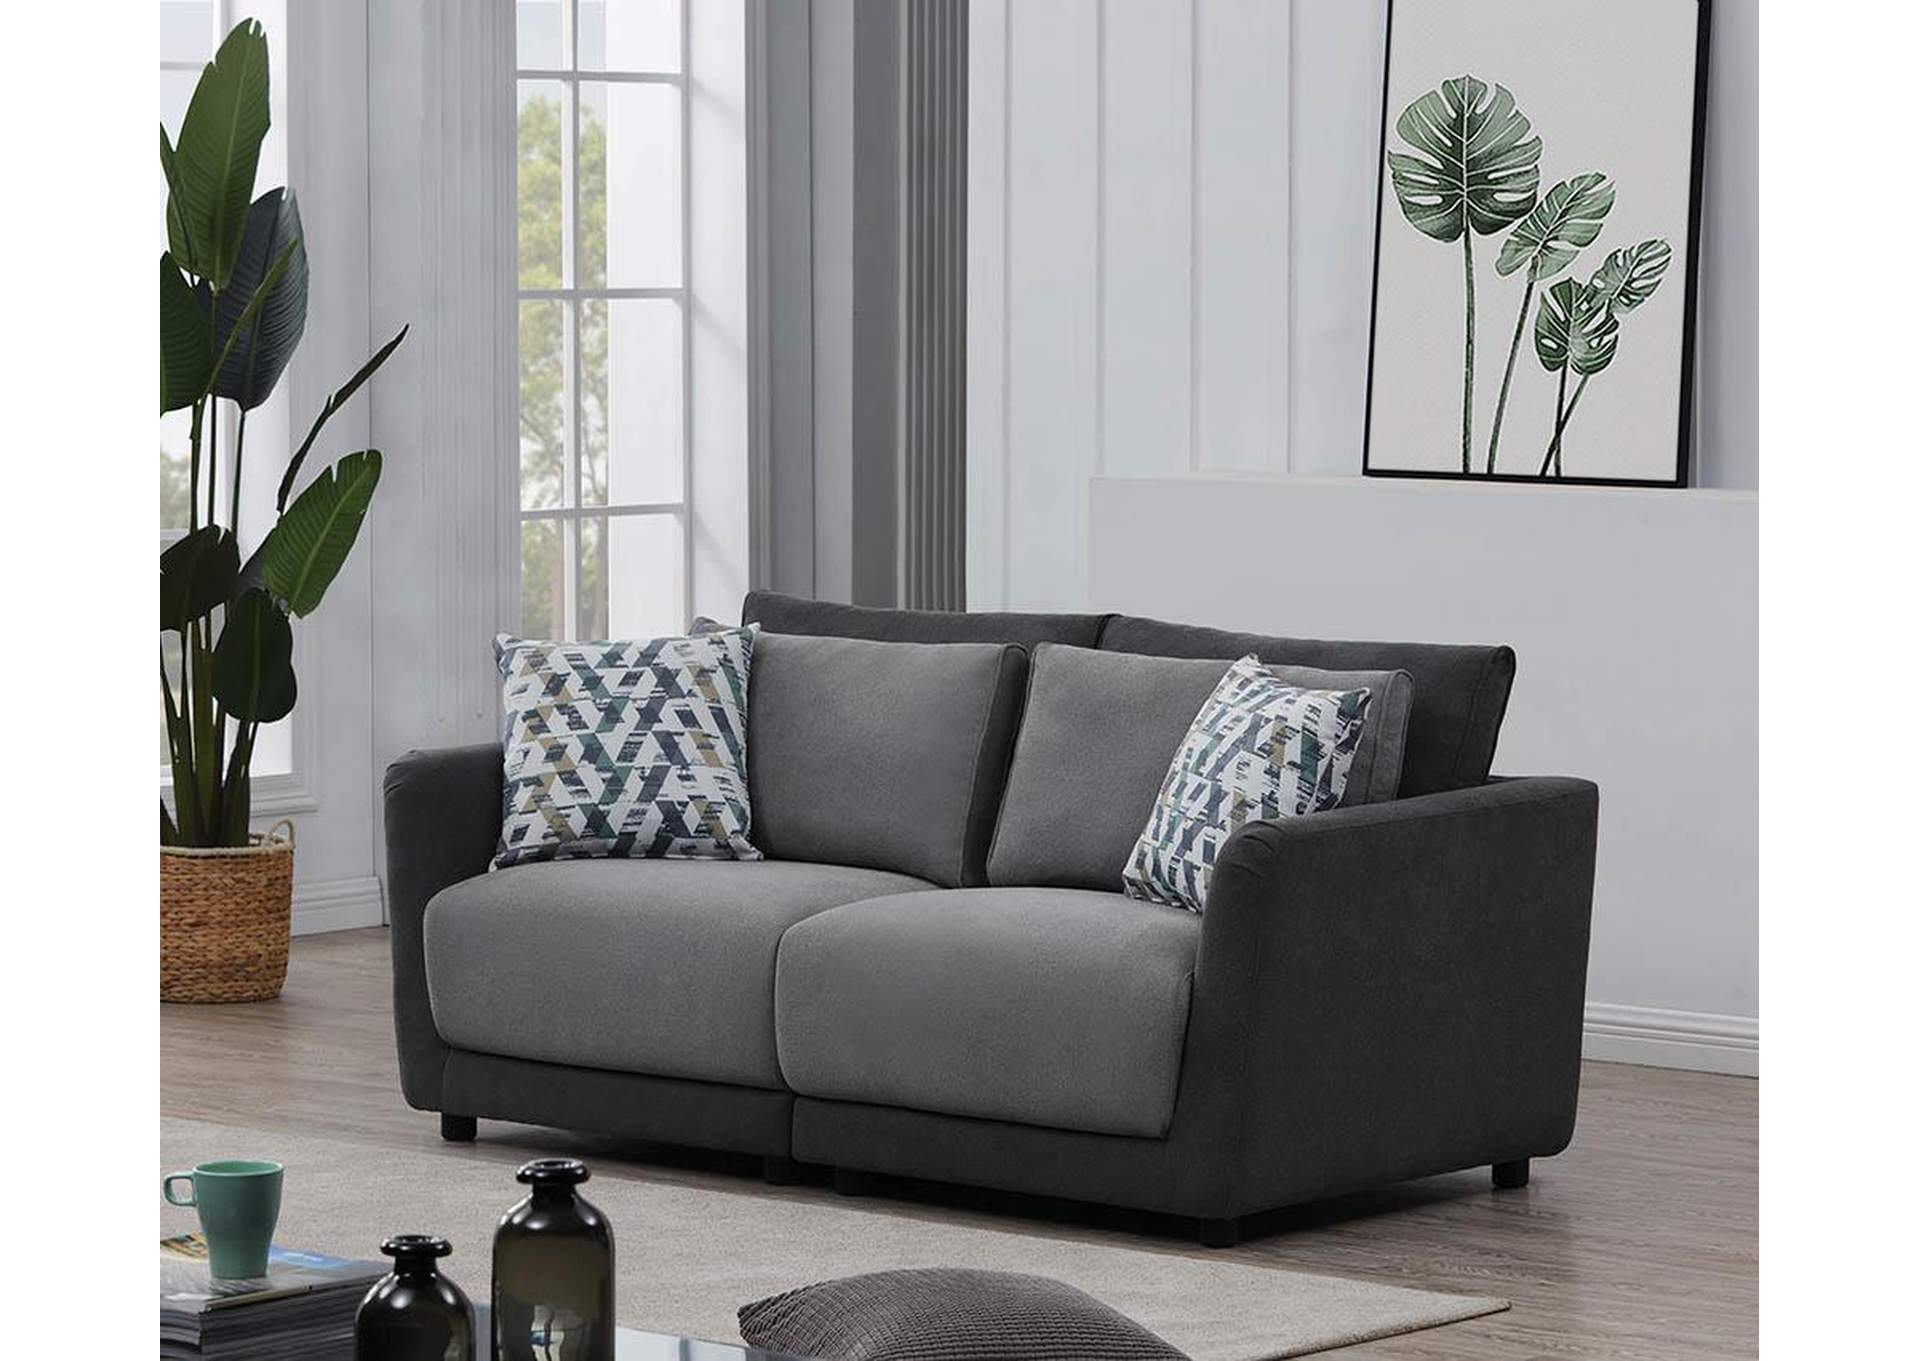 Seanna Two-Tone Grey 2 Piece Sectional Loveseat,Coaster Furniture